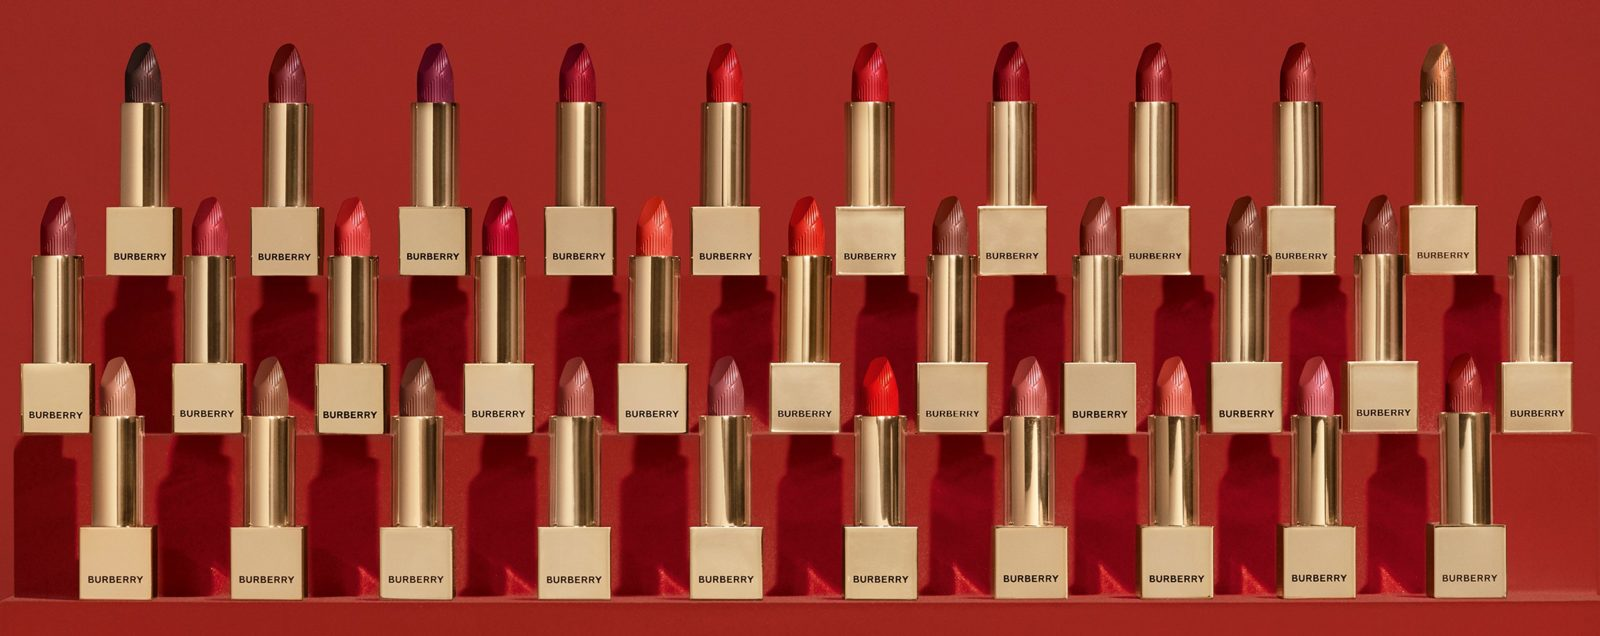 Beauty Buys: 11 new beauty essentials worth adding to cart this October 2021